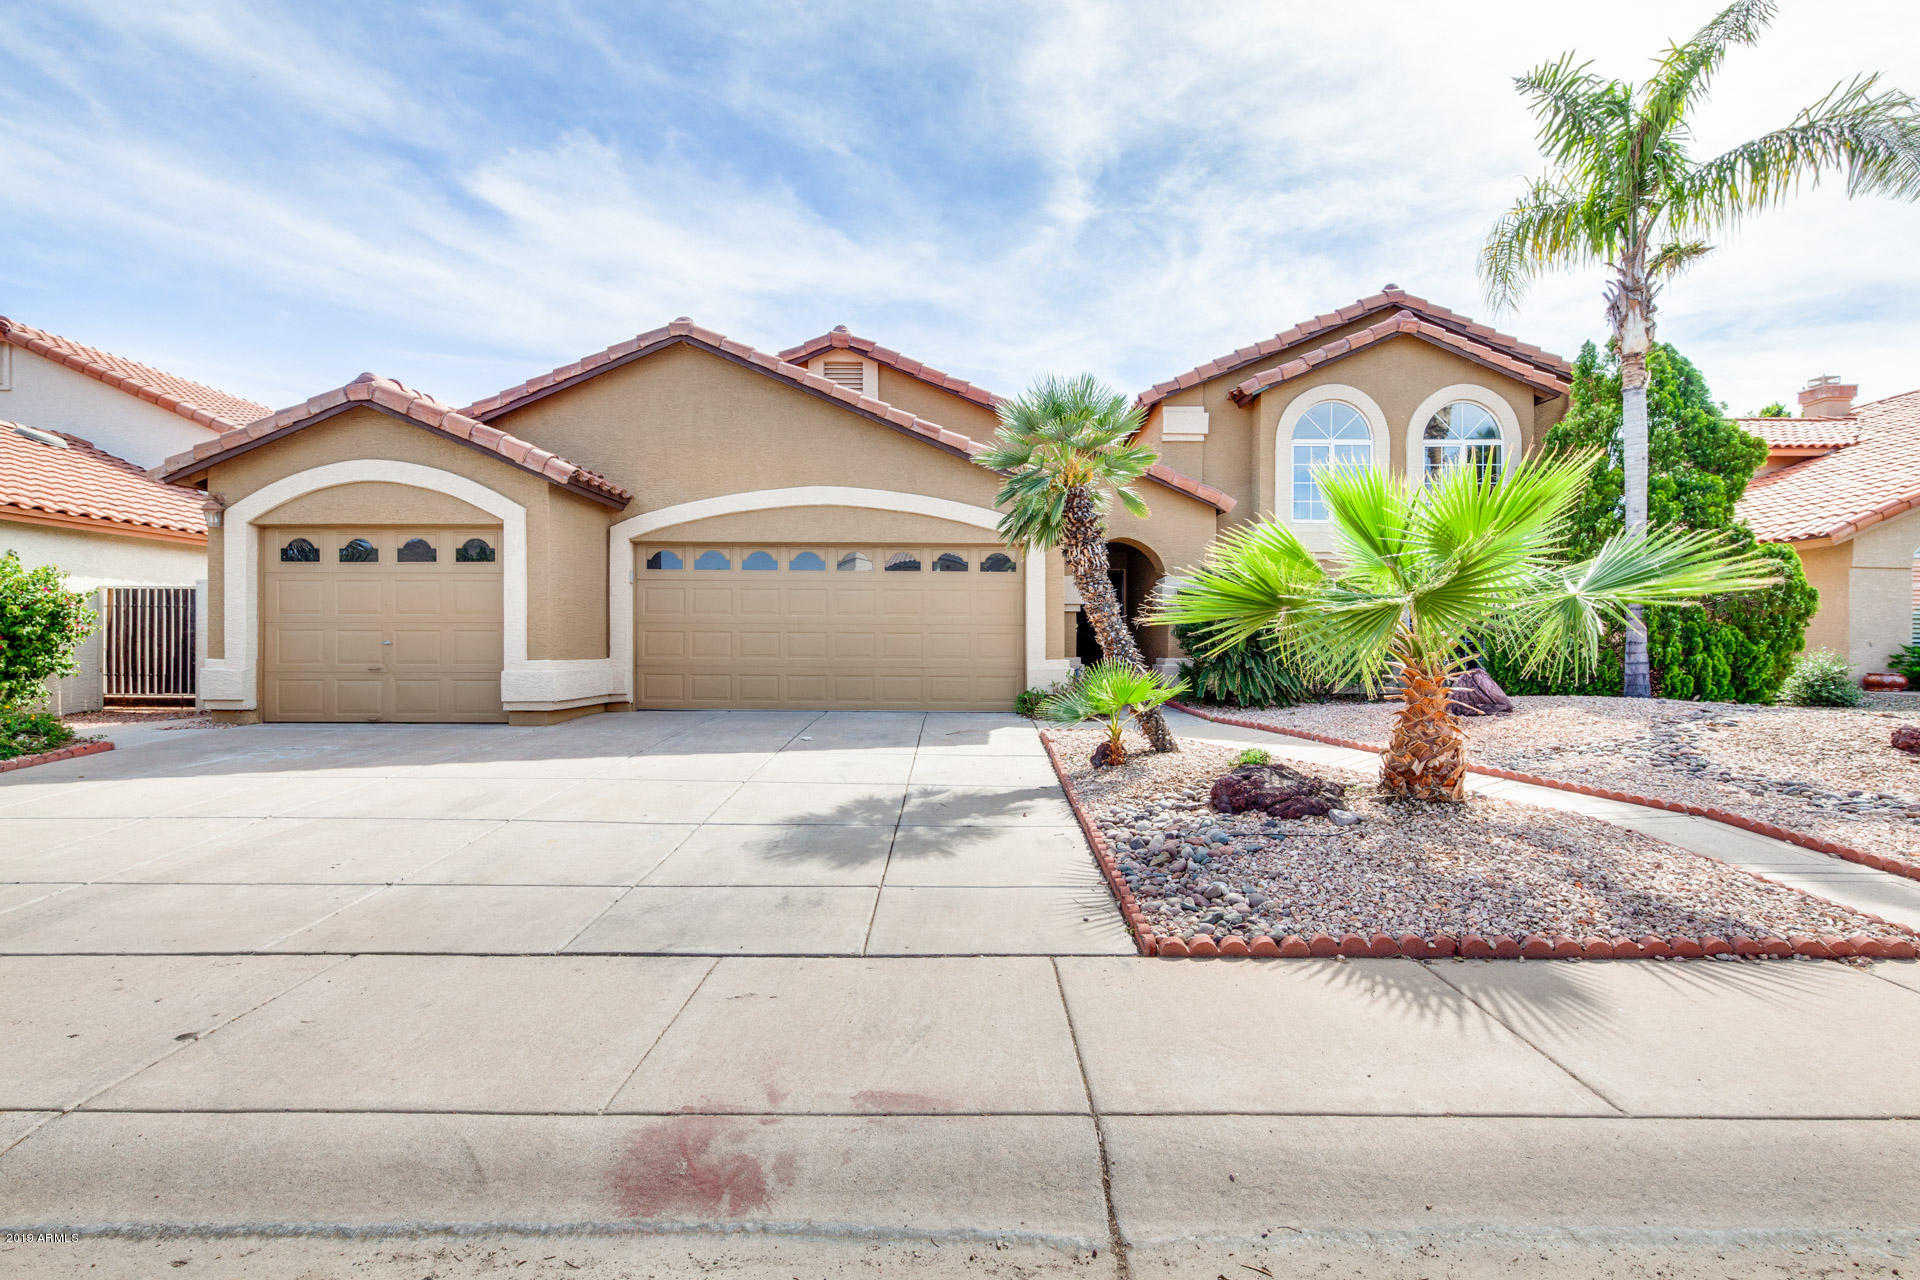 $399,000 - 5Br/3Ba - Home for Sale in Hamilton Arrowhead Ranch 4 Lot 1-106 Tr A-c, Glendale